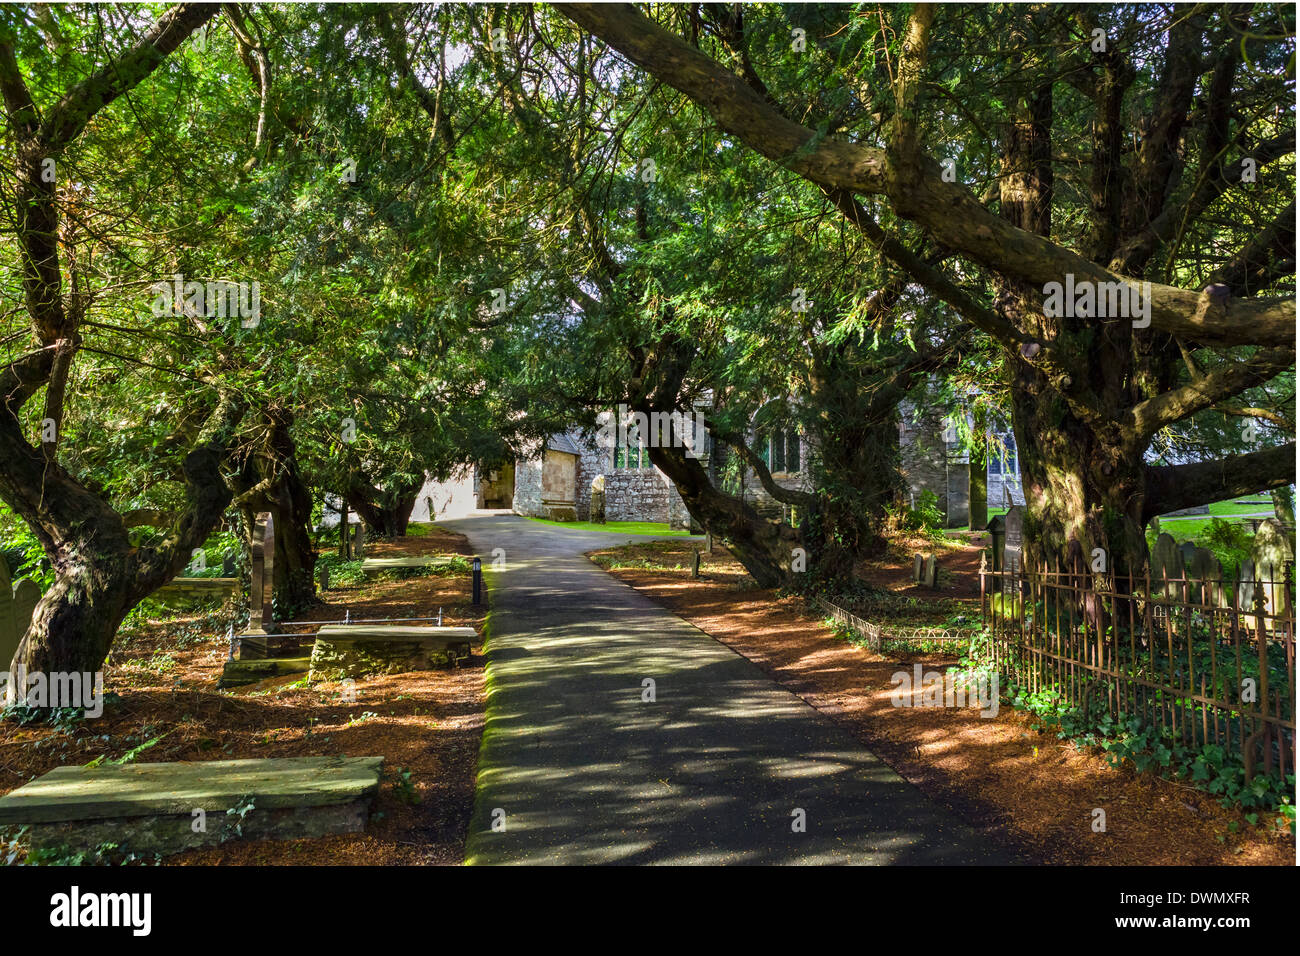 Avenue of Yew trees in the churchyard of St Brynach Church, Nevern, Pembrokeshire, West Wales, UK - Stock Image